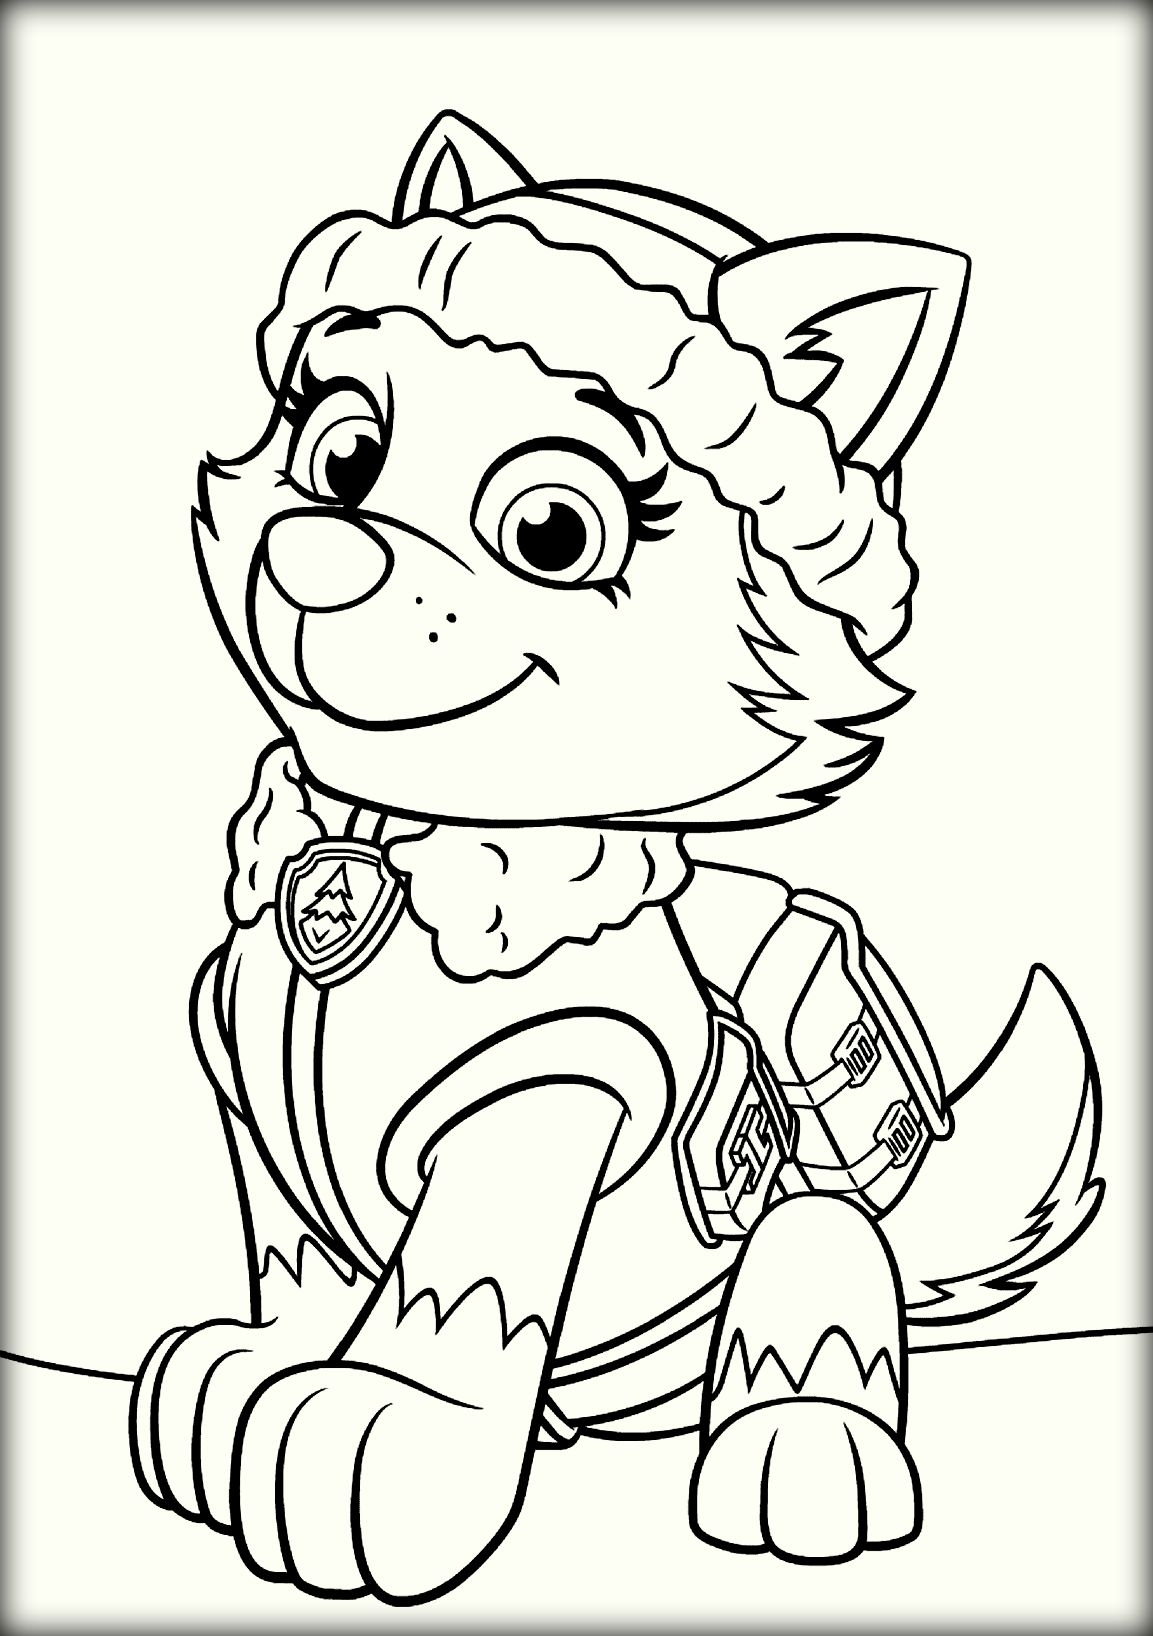 Ausmalbilder Paw Patrol Rocky : 25 Rocky Paw Patrol Coloring Page Pictures Free Coloring Pages